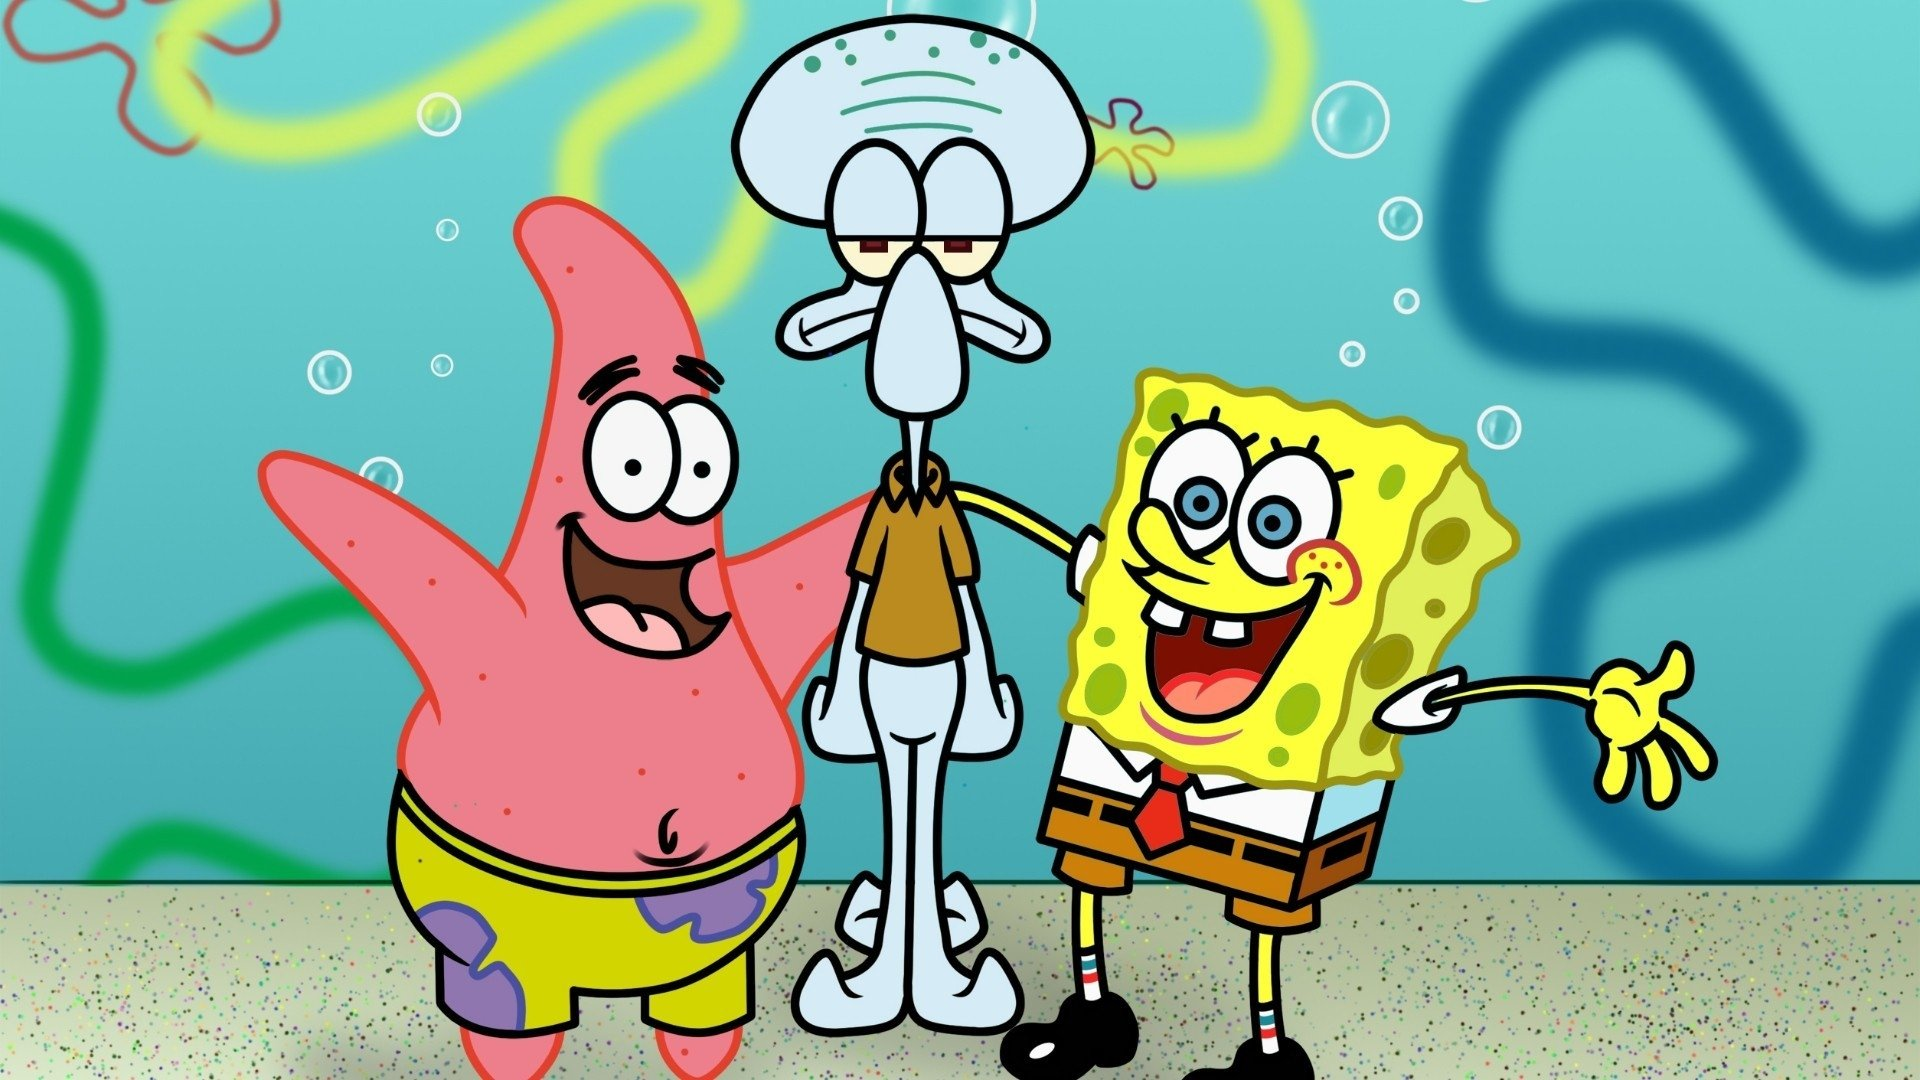 80 Spongebob Squarepants Hd Wallpapers Background Images Wallpaper Abyss